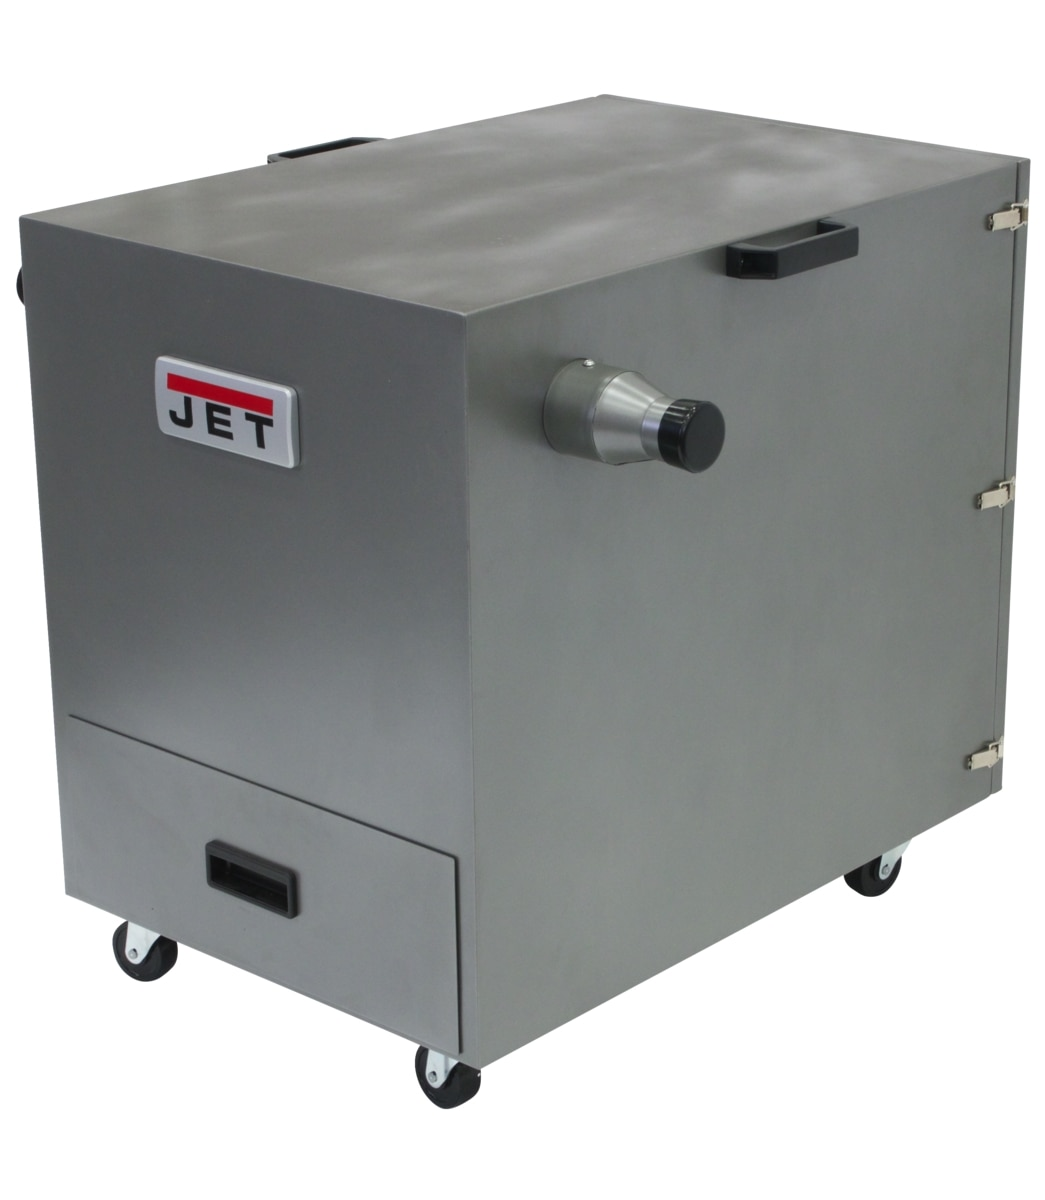 JDC-501, Cabinet Dust Collector For Metal 115/230V 1Ph